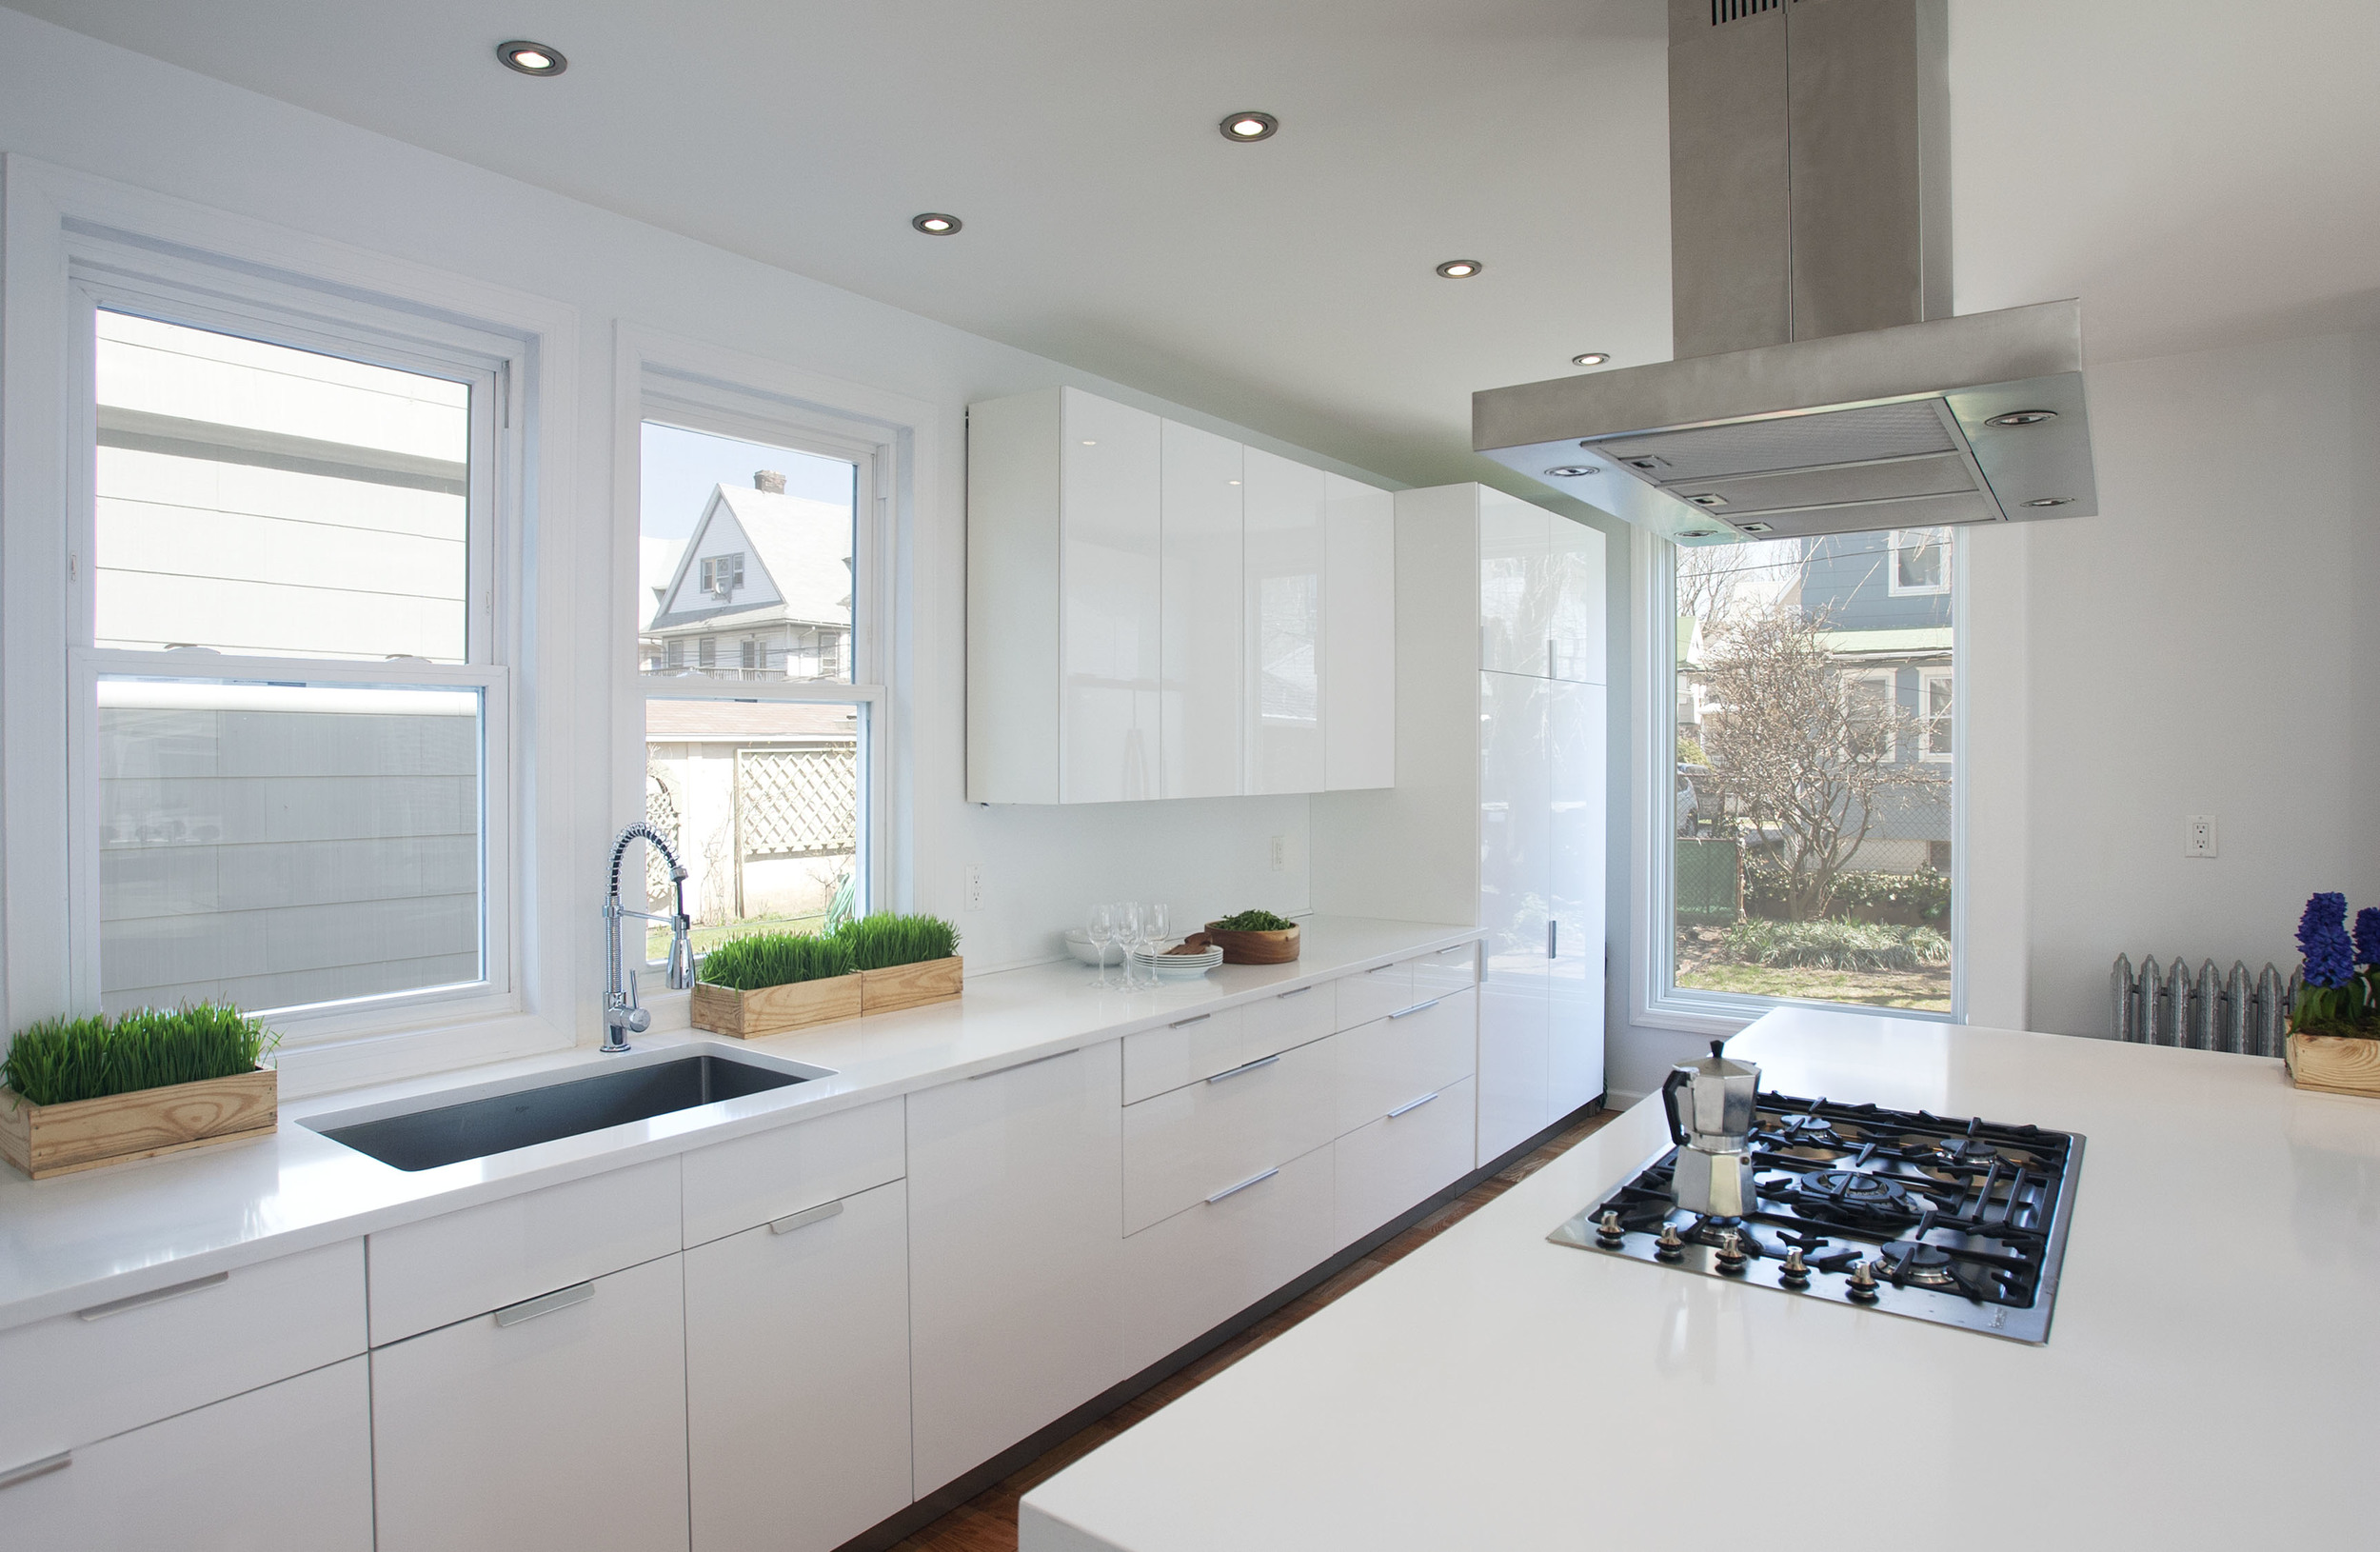 DitmasPark_Kitchen3.jpg